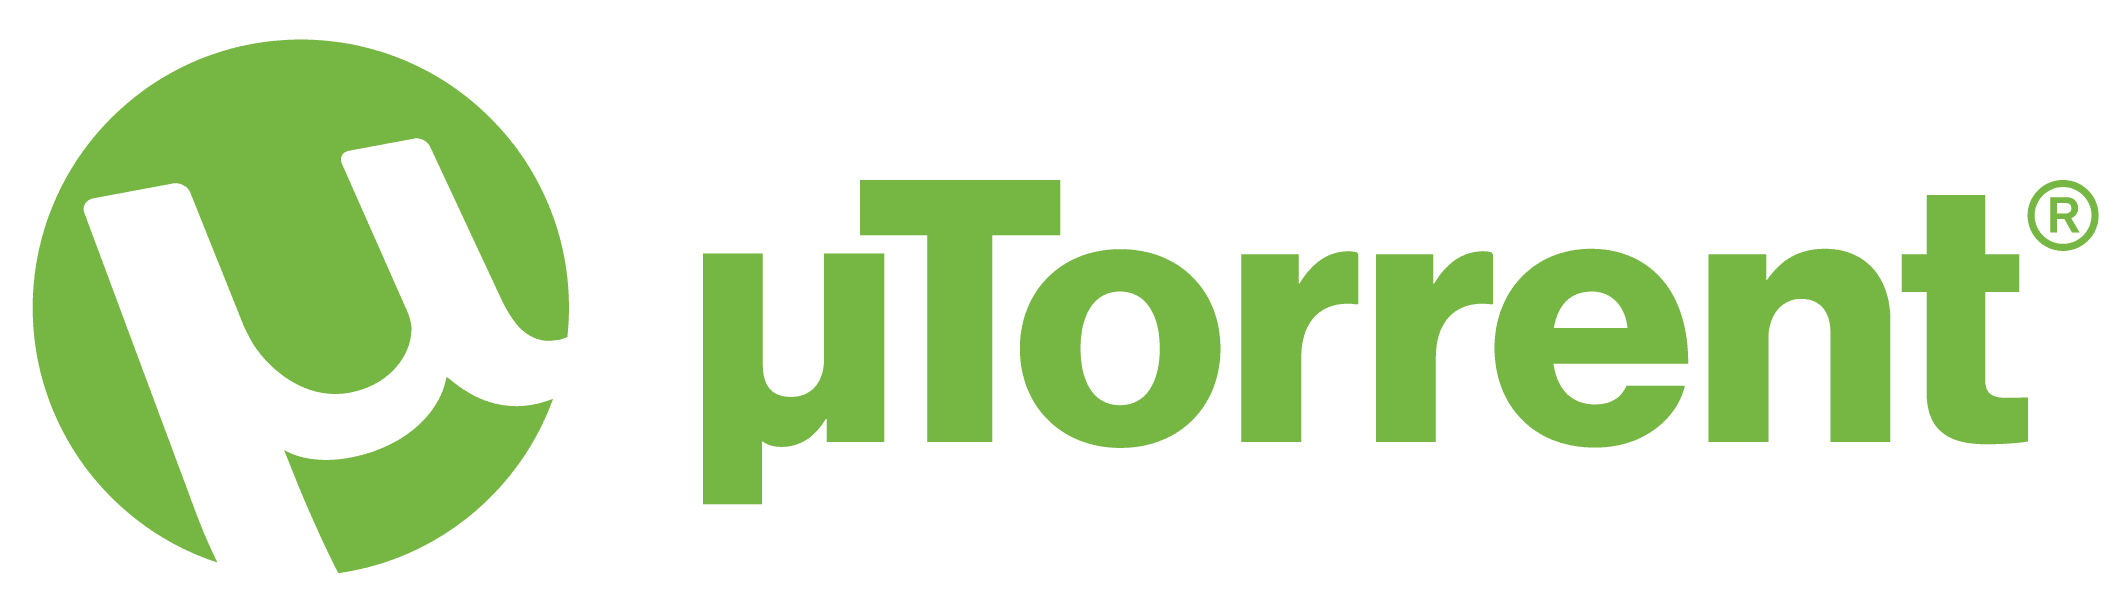 download-utorrent 64 bits